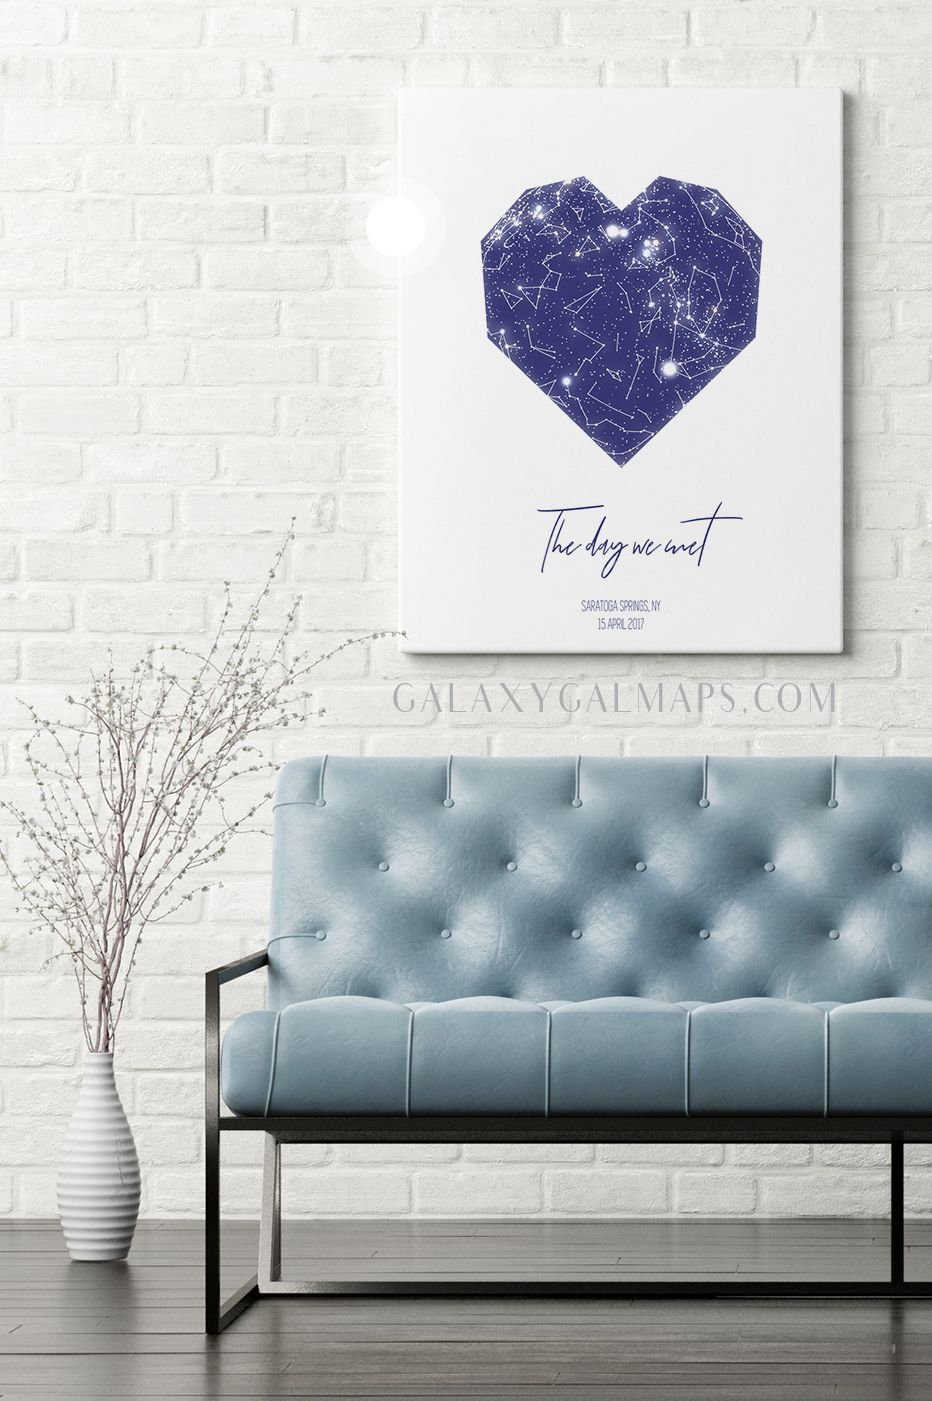 Unique sky map for your date world map poster large world map unique sky map for your date world map poster large world map poster world map gumiabroncs Choice Image